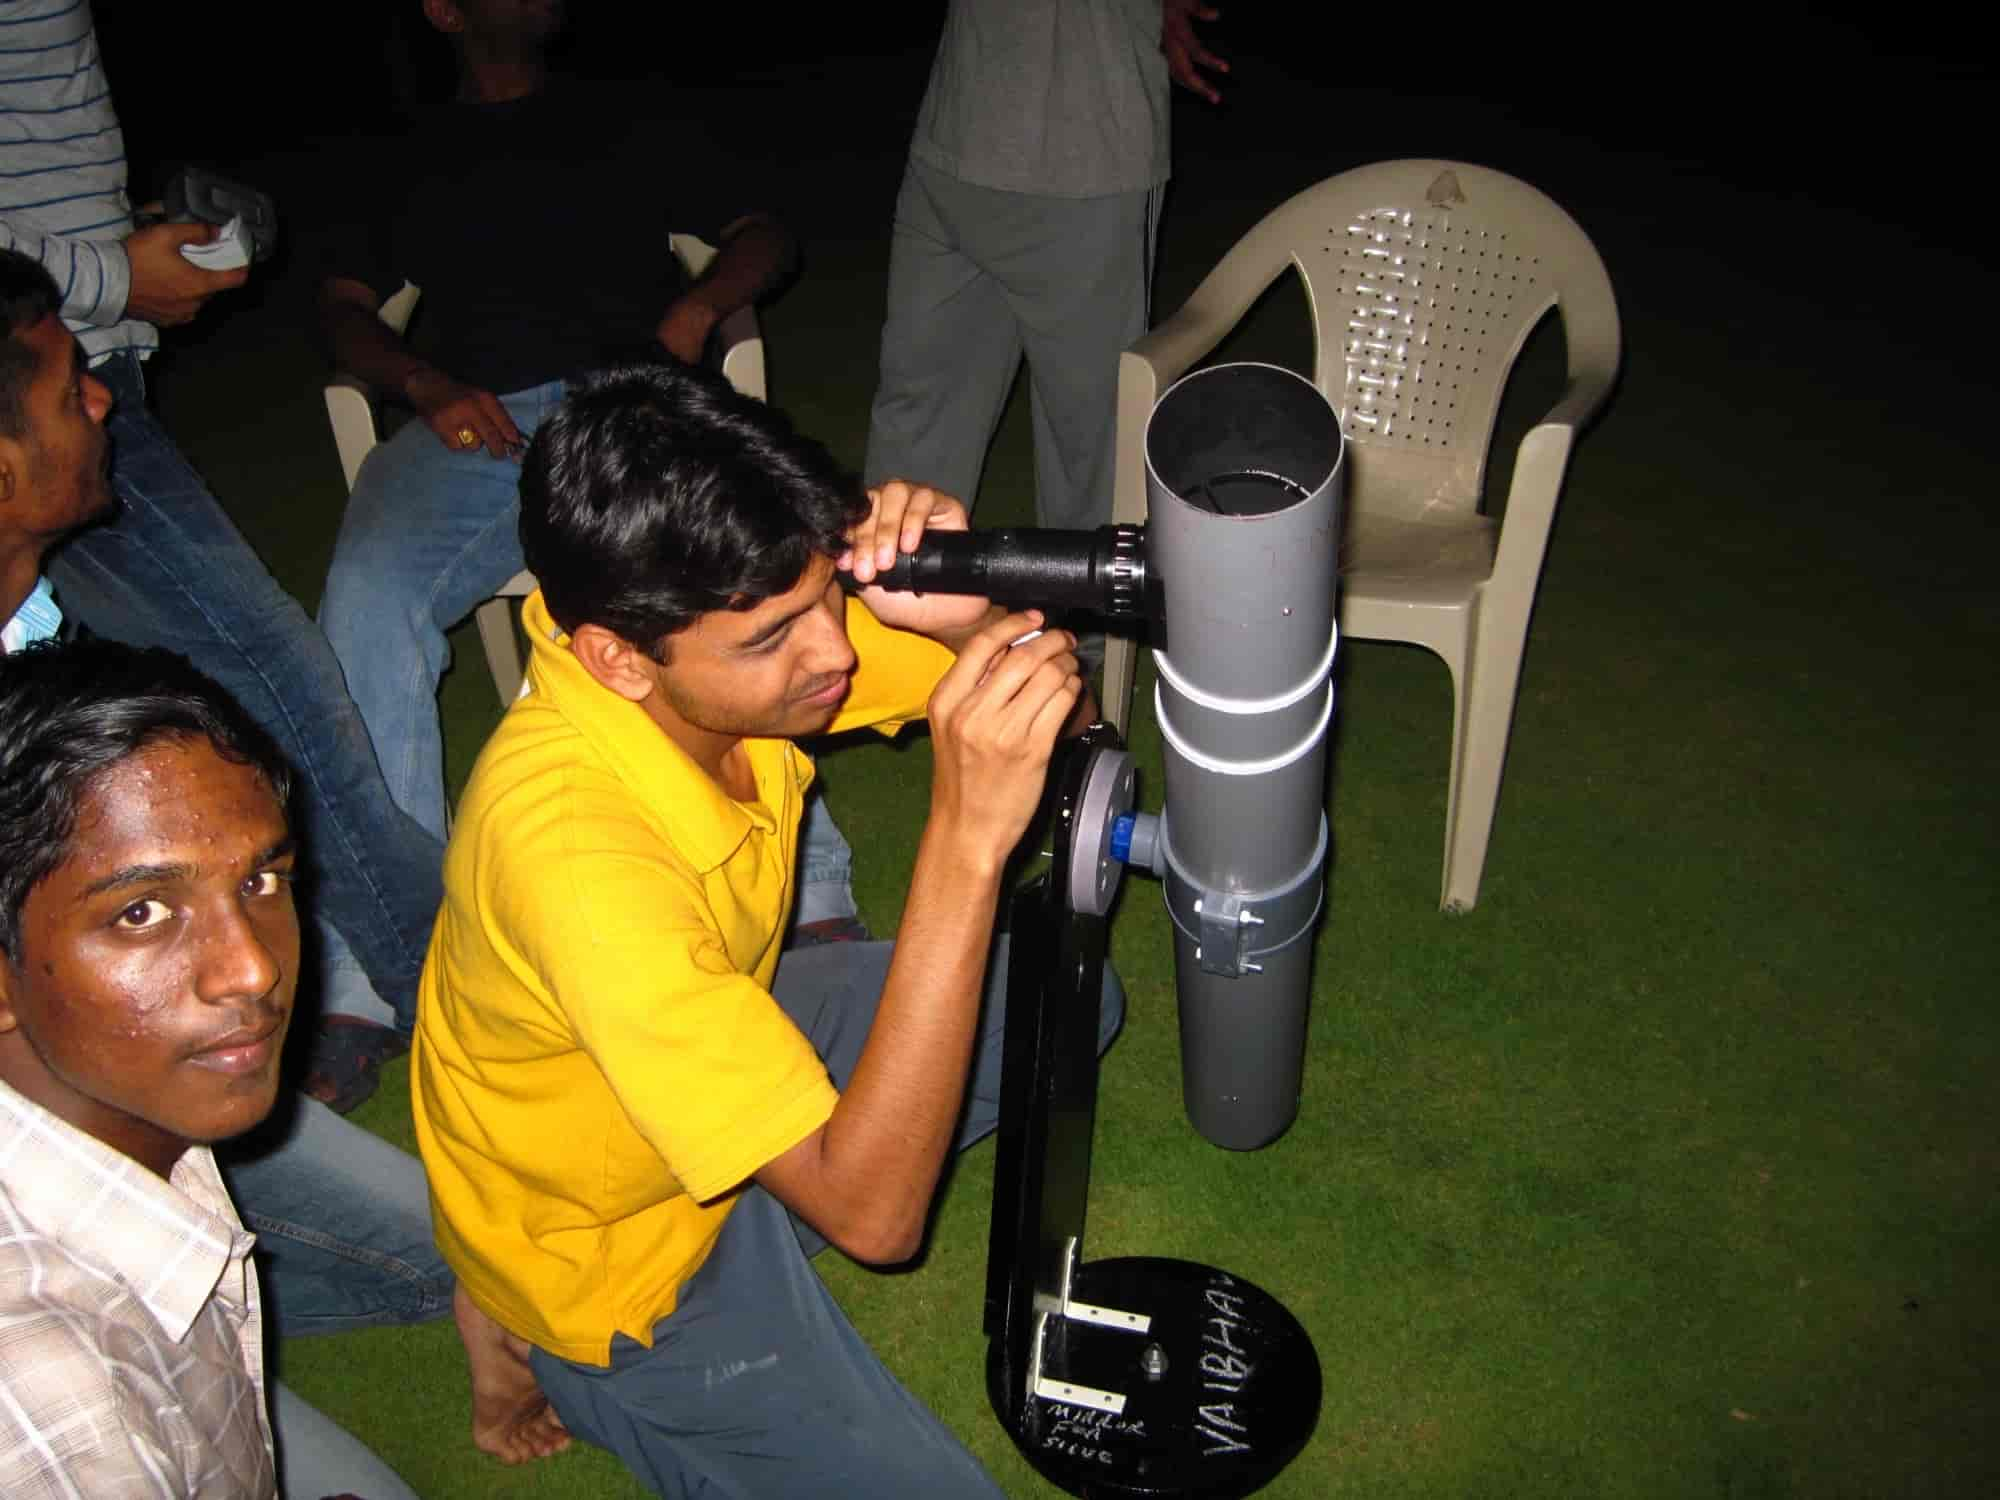 Has Amateur astronomers club for